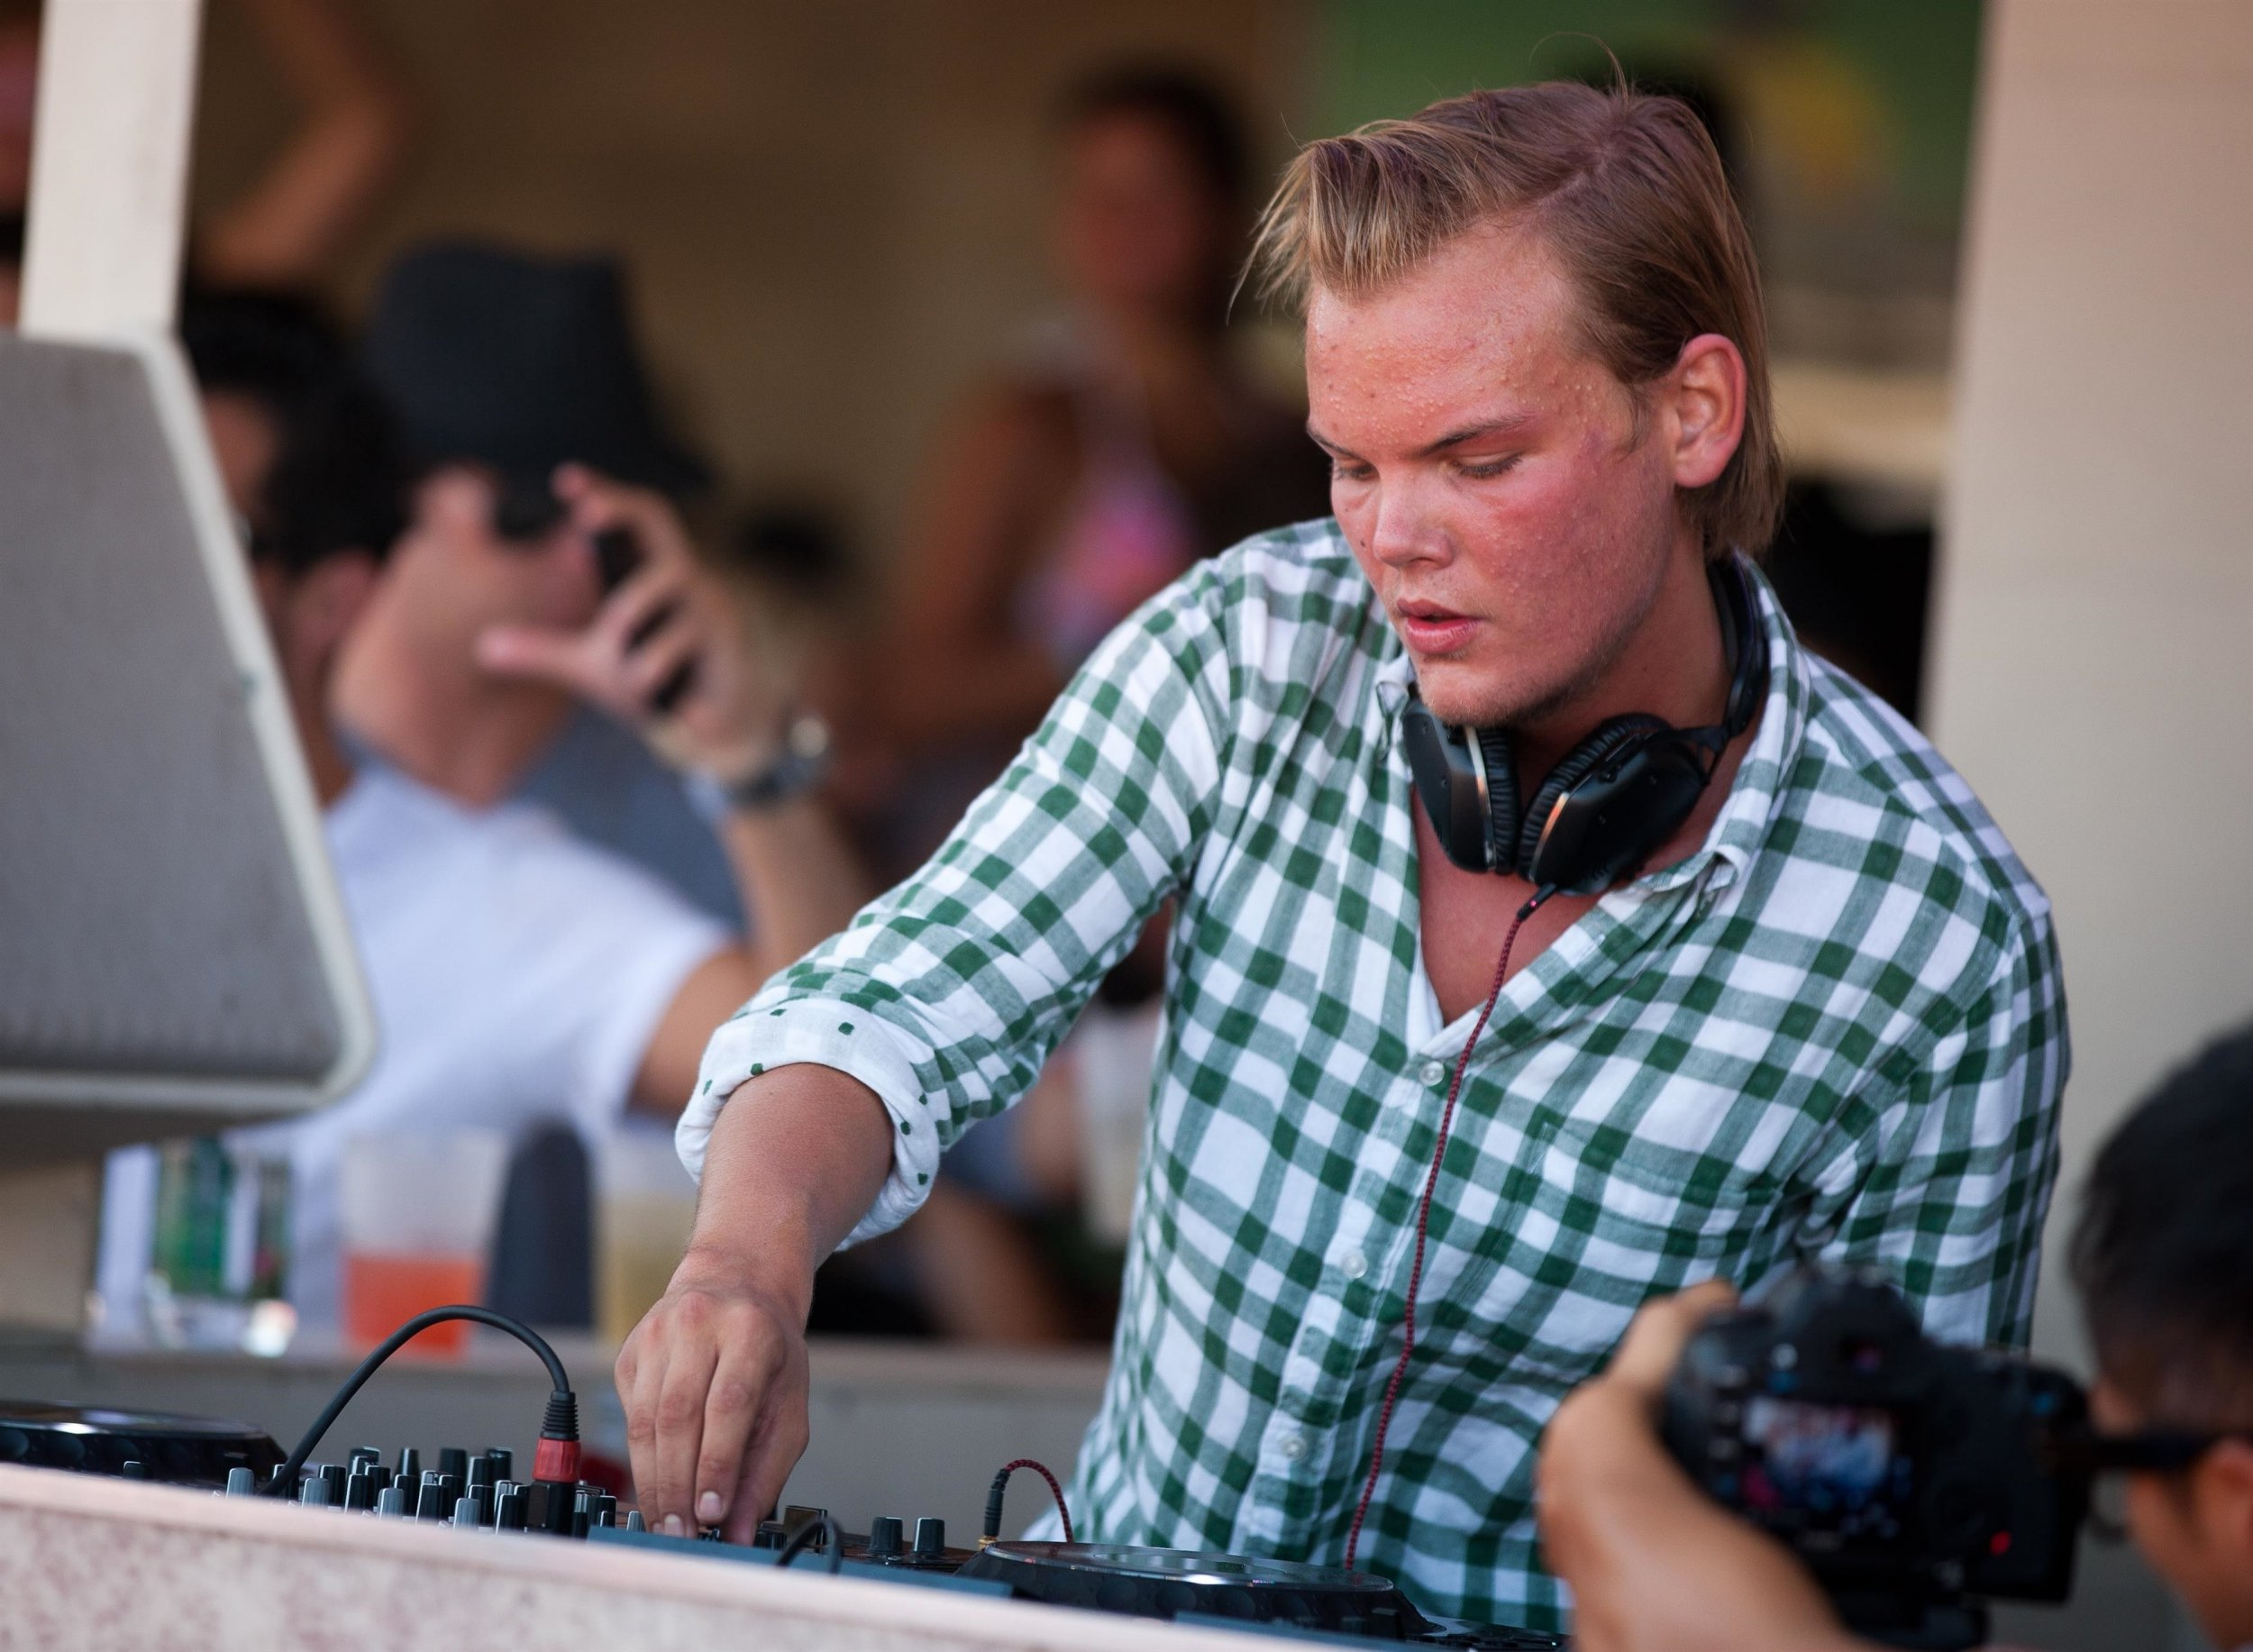 Avicii performs at F*** Me I'm Famous! Pool Party for Labor Day Weekend at Wet Republic in Las Vegas, NV on September 4, 2011. Pictured: Avicii BACKGRID USA 20 APRIL 2018 BYLINE MUST READ: MediaPunch / BACKGRID USA: +1 310 798 9111 / usasales@backgrid.com UK: +44 208 344 2007 / uksales@backgrid.com *UK Clients - Pictures Containing Children Please Pixelate Face Prior To Publication*